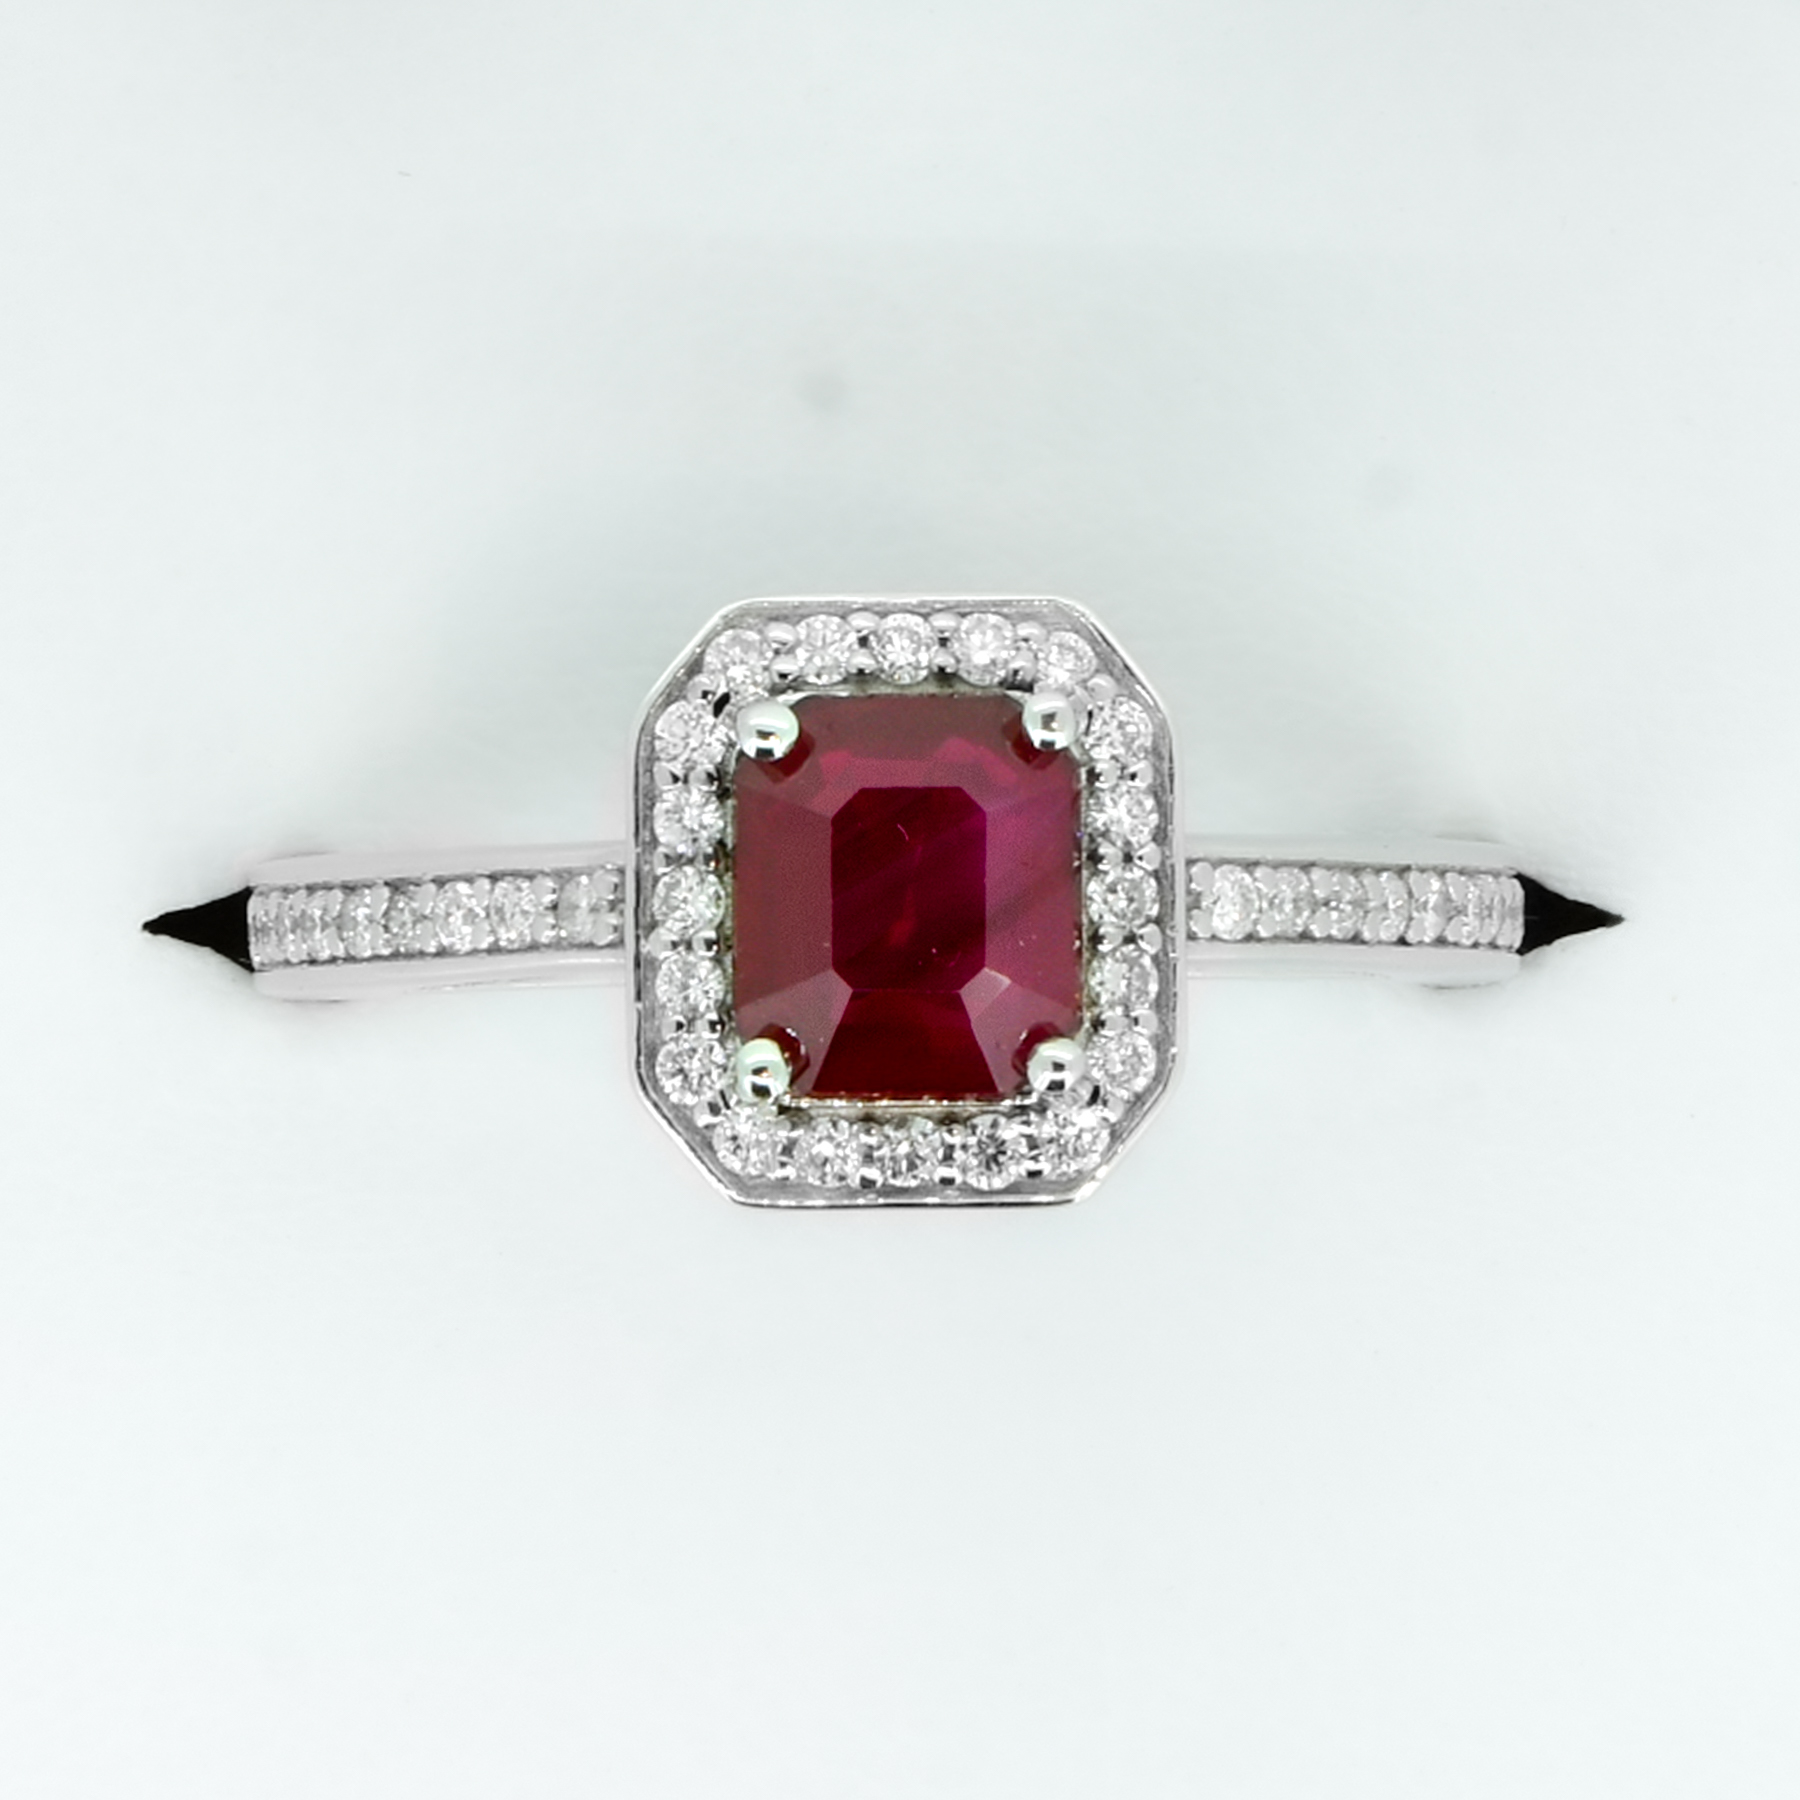 1.55ct Ruby and Diamond Halo Engagement Ring - 1982117-2